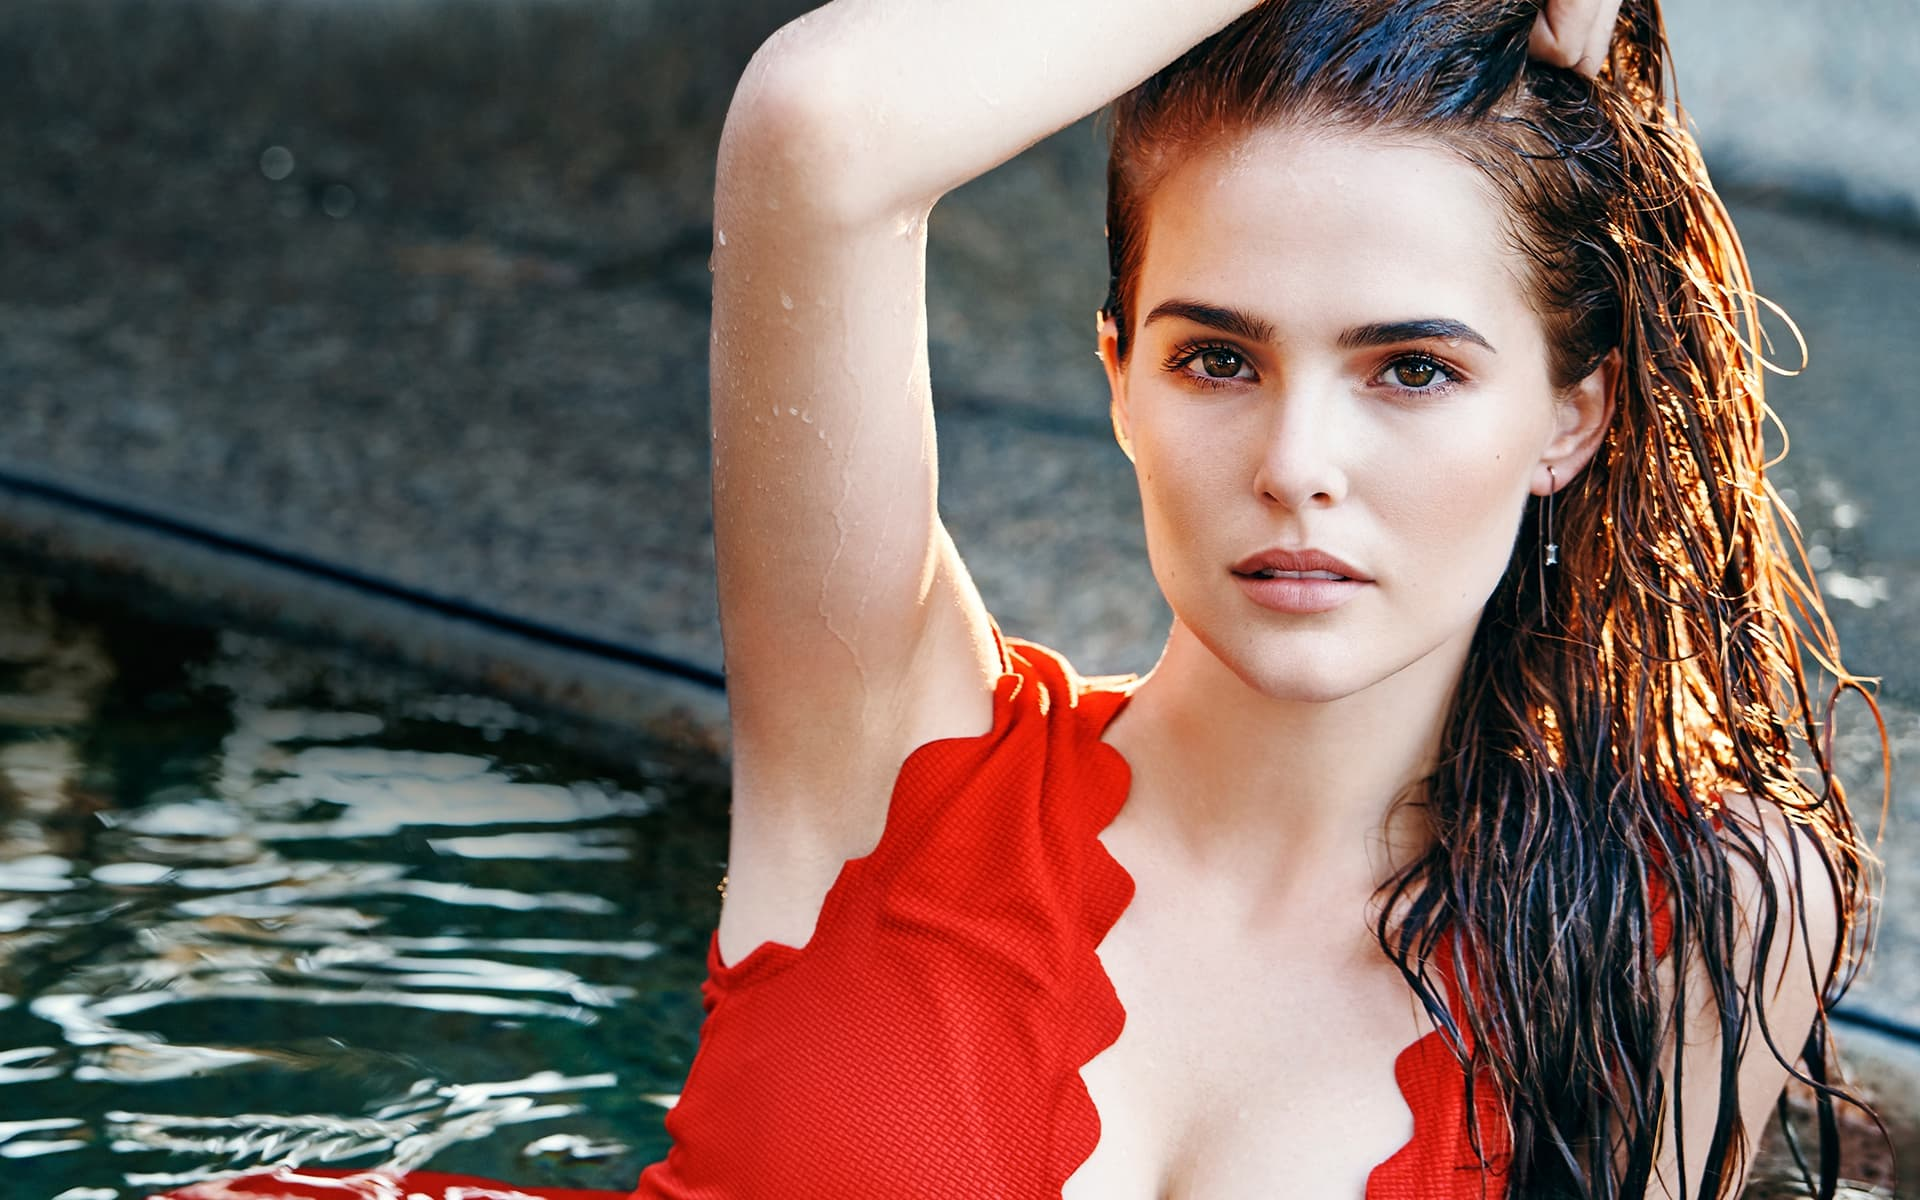 b1c06d6bcf6 Hot Zoey Deutch HD Wallpaper 55404 1920x1200px